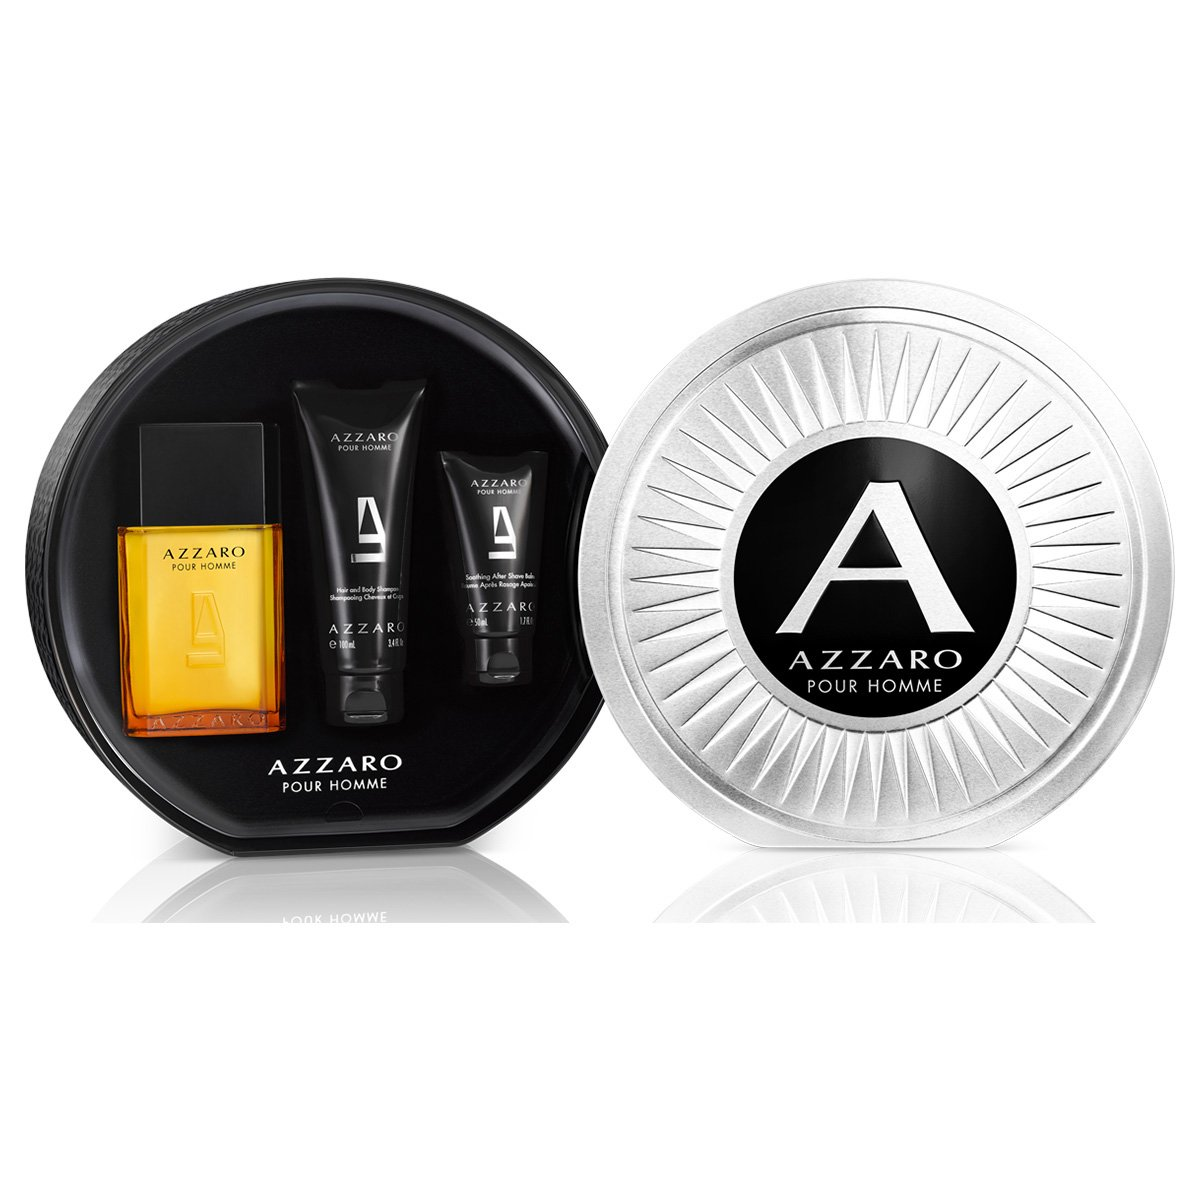 402f79780 Kit Perfume Azzaro Pour Homme Masculino EDT 100ml + Body Shampoo 100ml +  After Shave Balm 50ml - Compre Agora